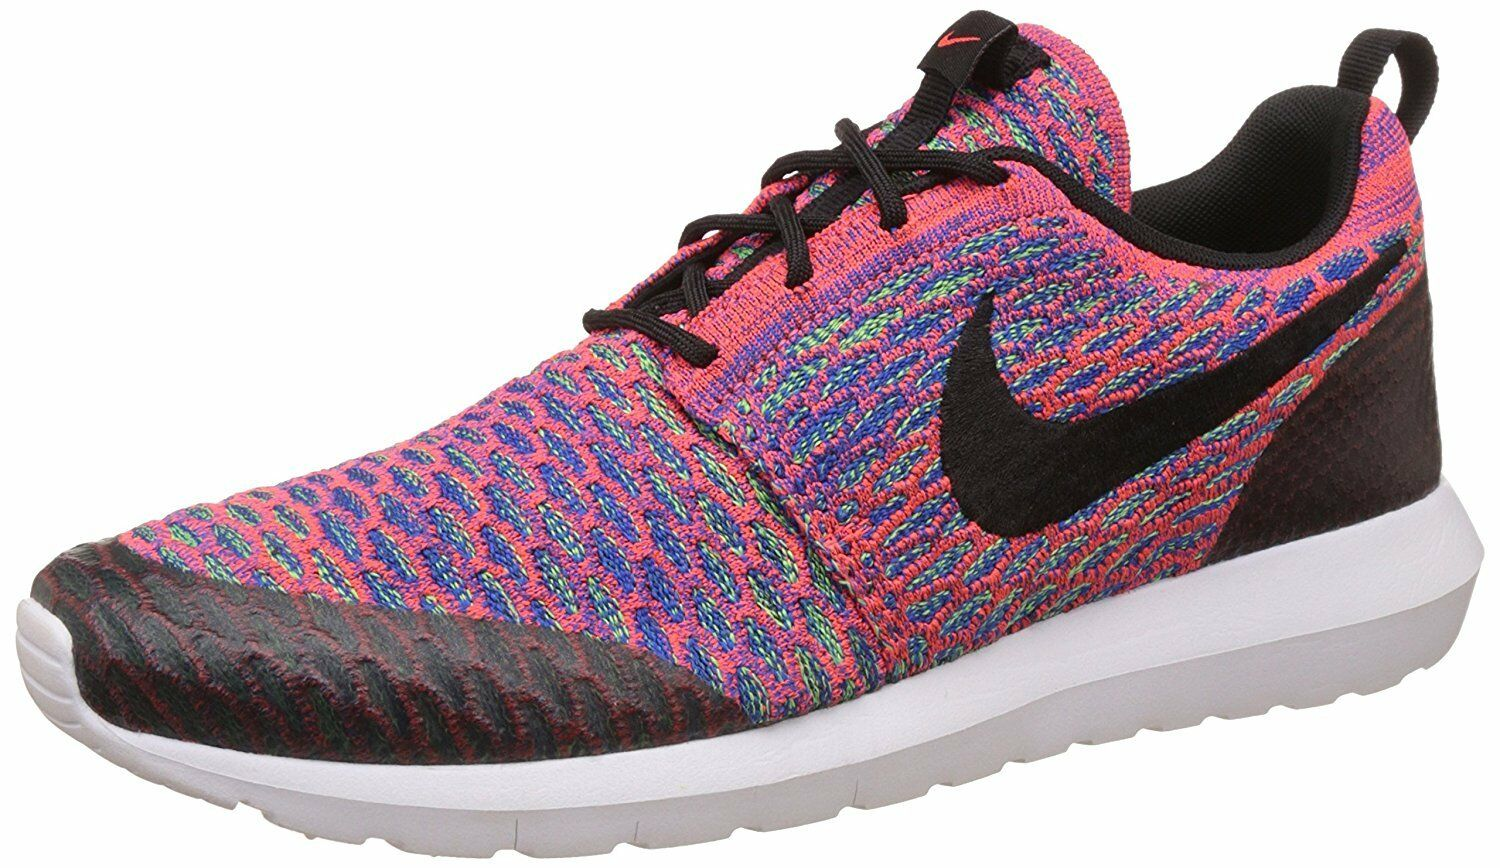 Nike Unisex Roshe NM Flyknit Running shoes 816531 600 M 11  W 12.5 (29CM)